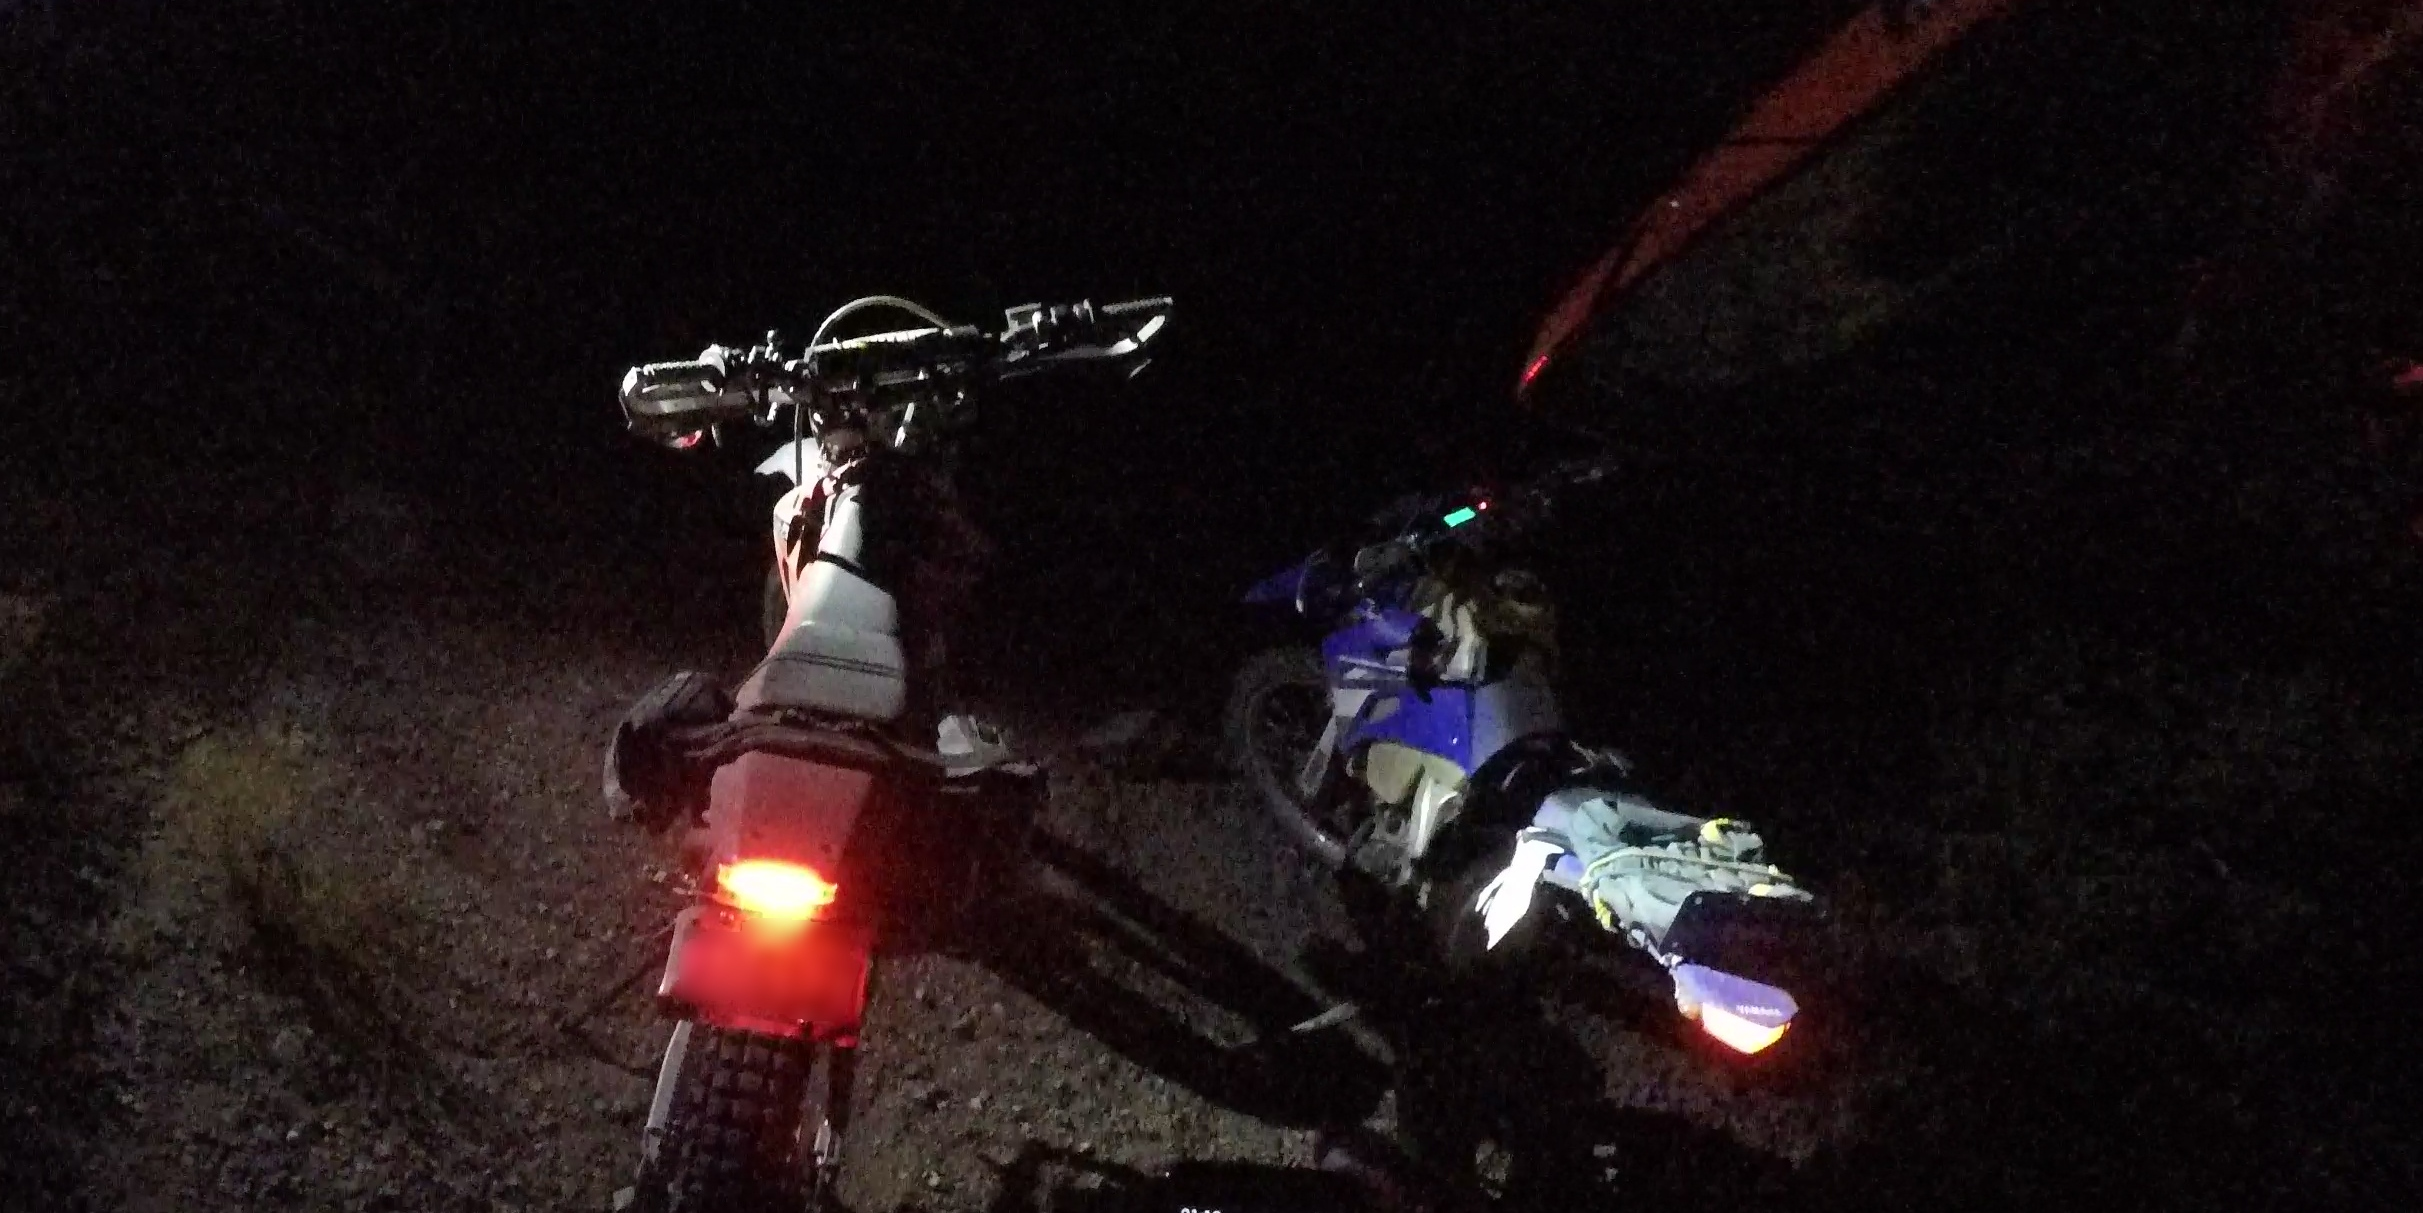 Adding A Tail Brake Light Crf230f Mods Source Assembly For Motorcycle On Wiring